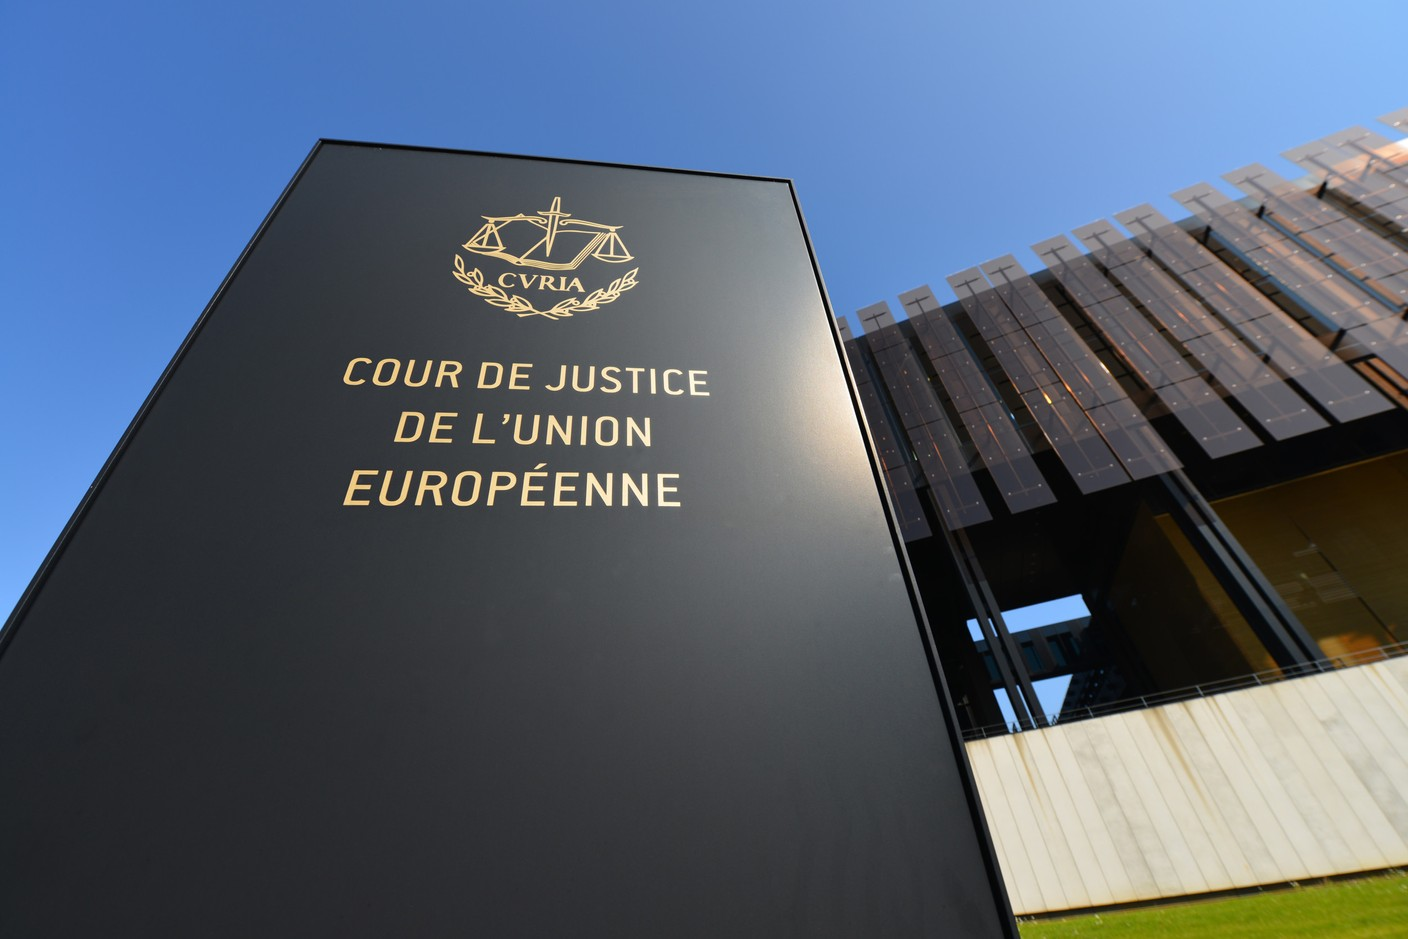 The European Court of Justice has its headquarters in Kirchberg, Luxembourg city. Photo: Shutterstock.